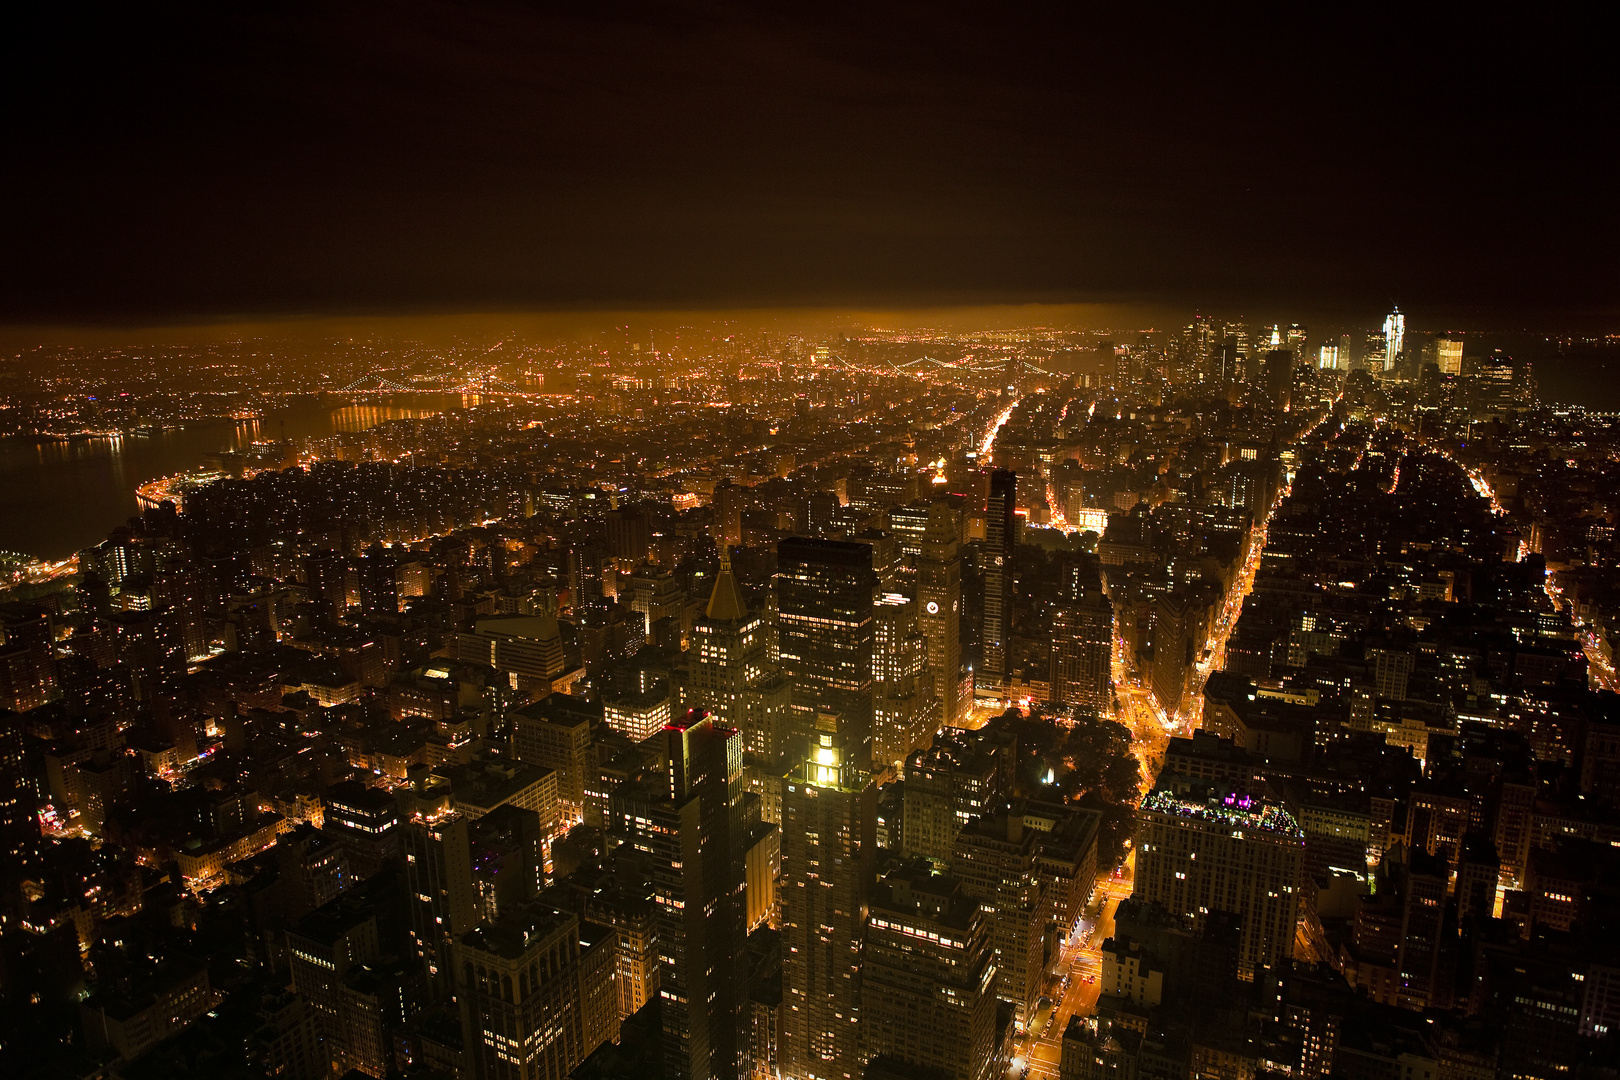 The city never sleeps...